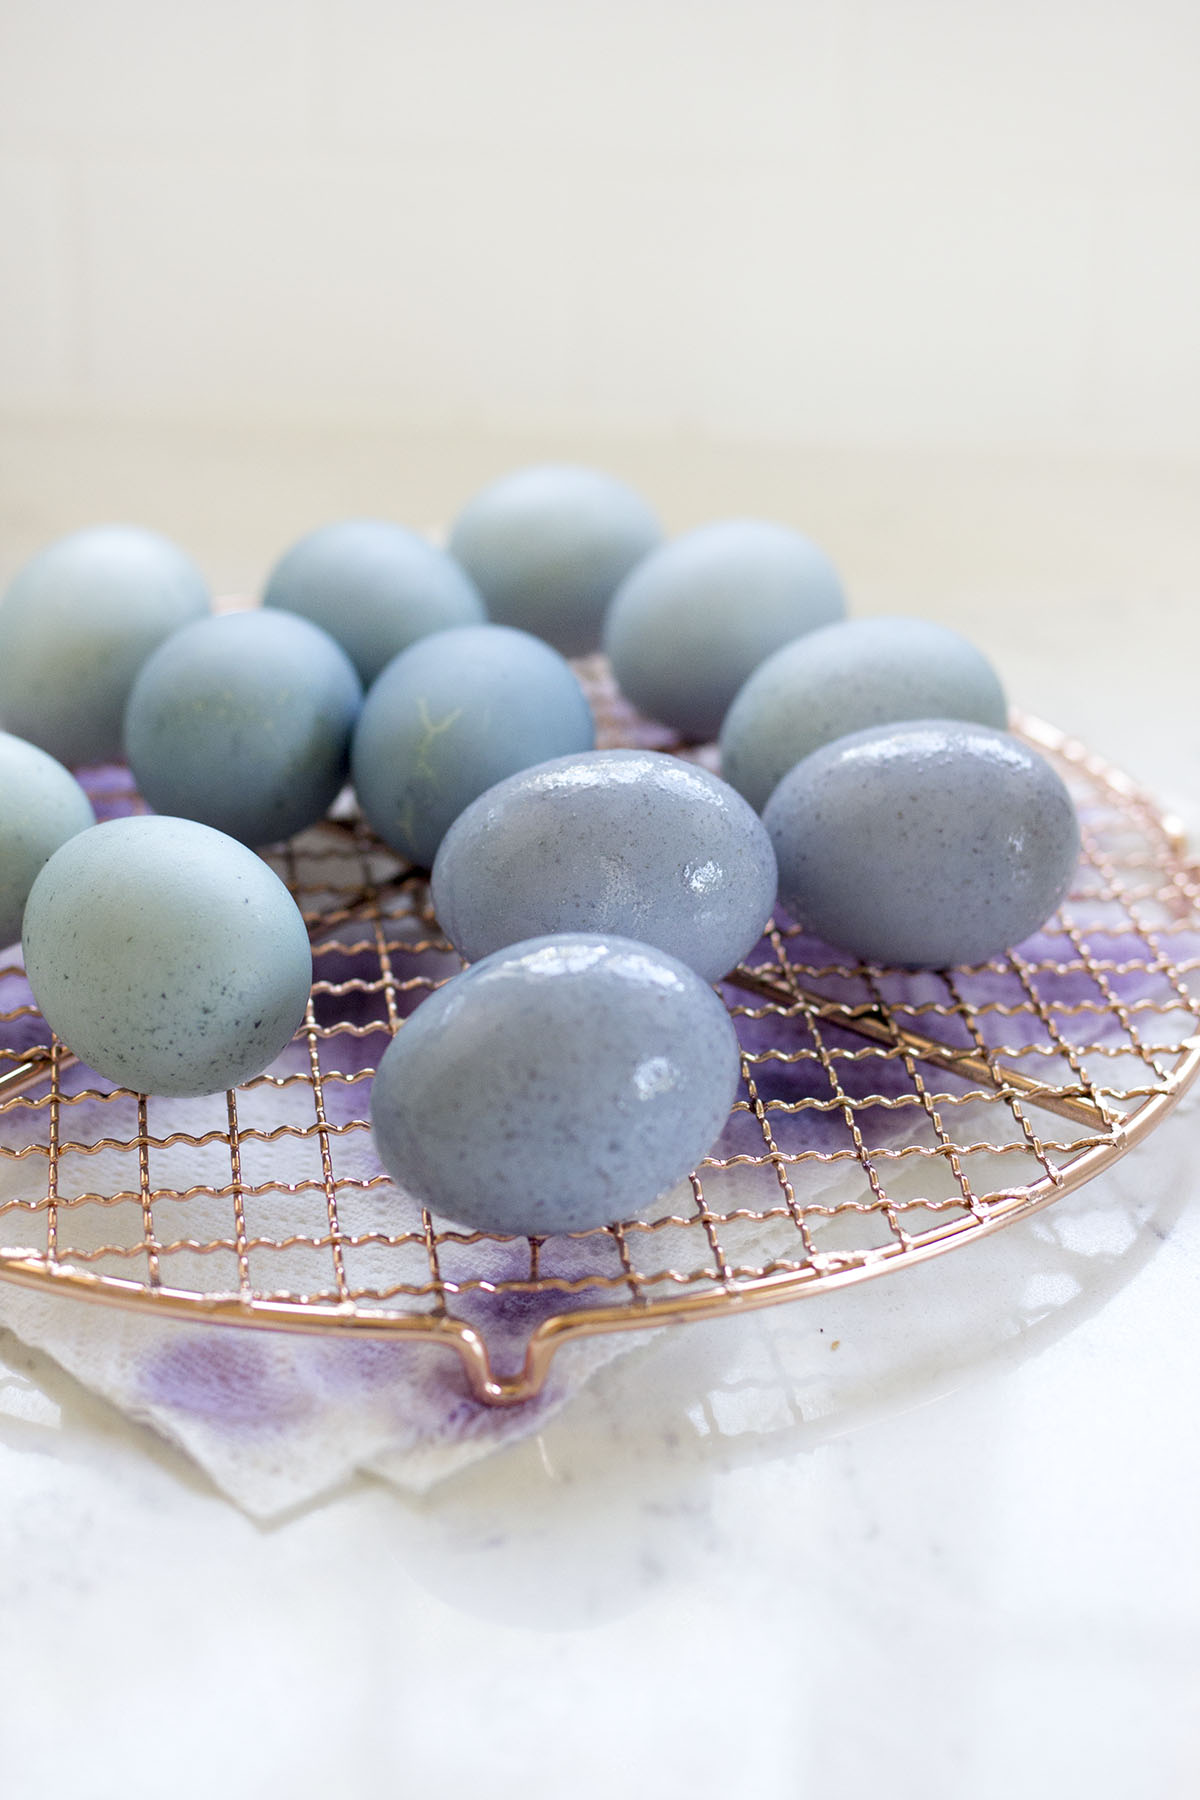 How to Dye Easter Eggs with Blueberries